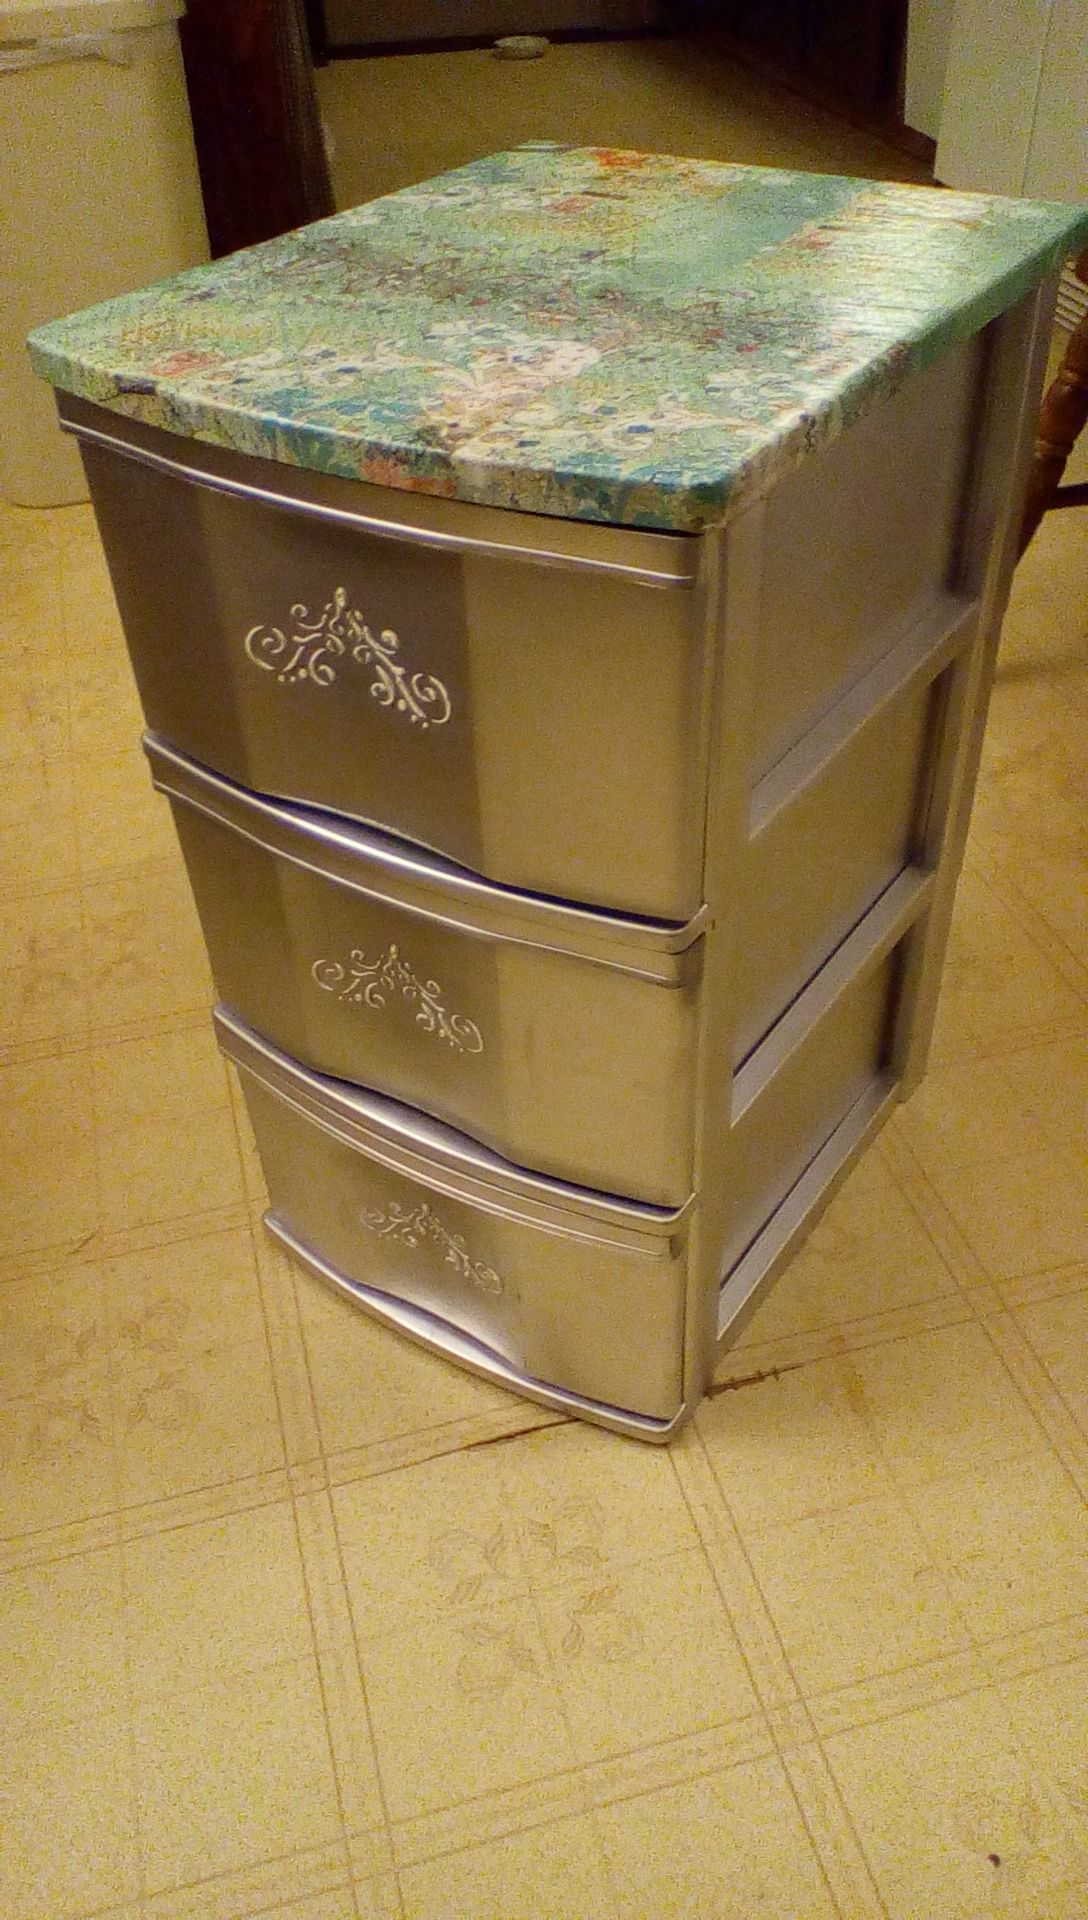 Plastic Sterlite Drawers With Decoupage Top Silver Paint And